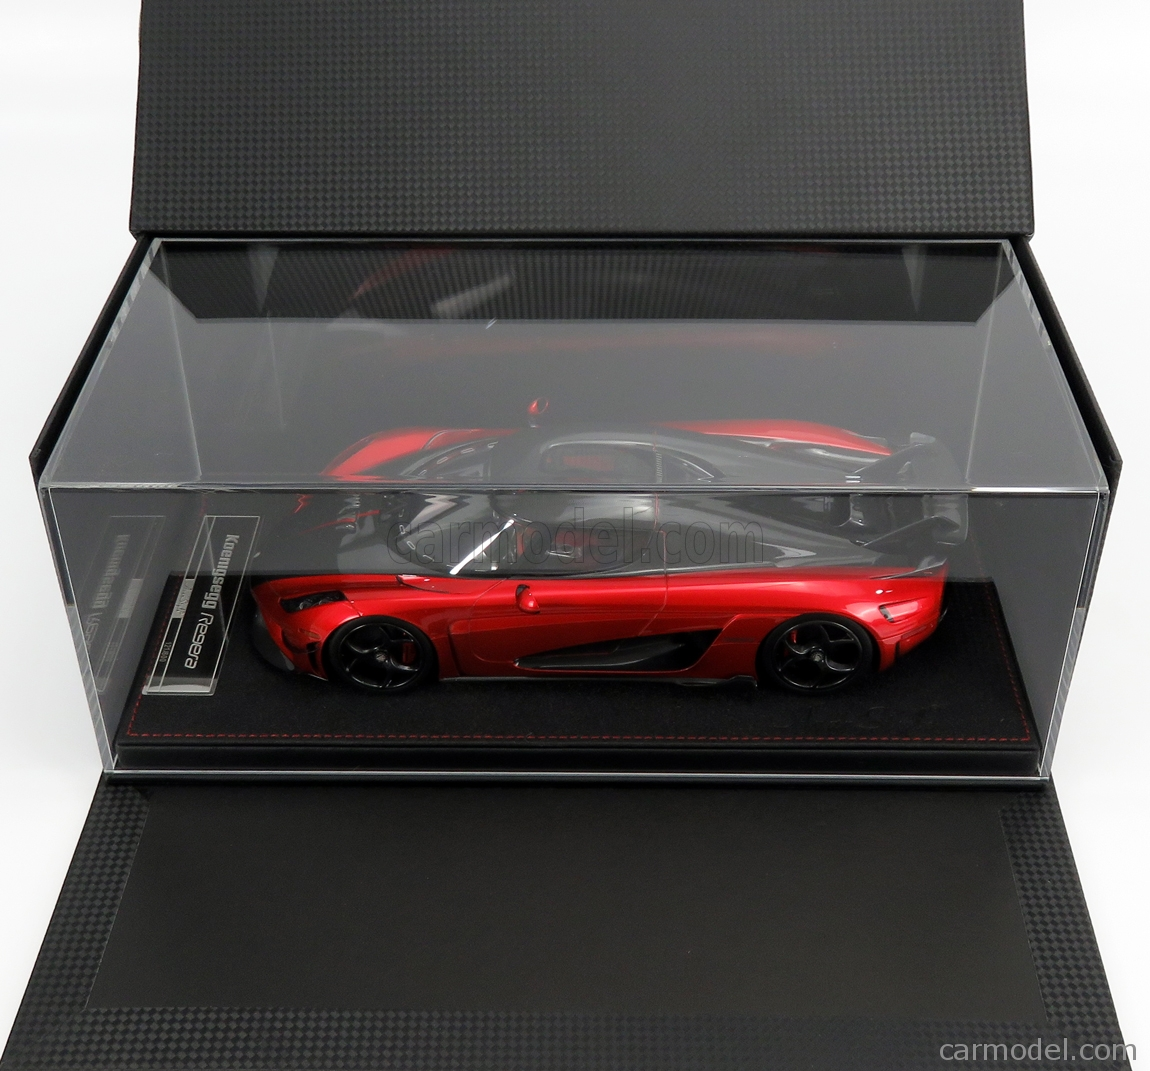 FRONTI-ART AS025-77 Масштаб 1/18  KOENIGSEGG REGERA 2016 - CON VETRINA - WITH SHOWCASE CANDY APPLE RED MET CARBON